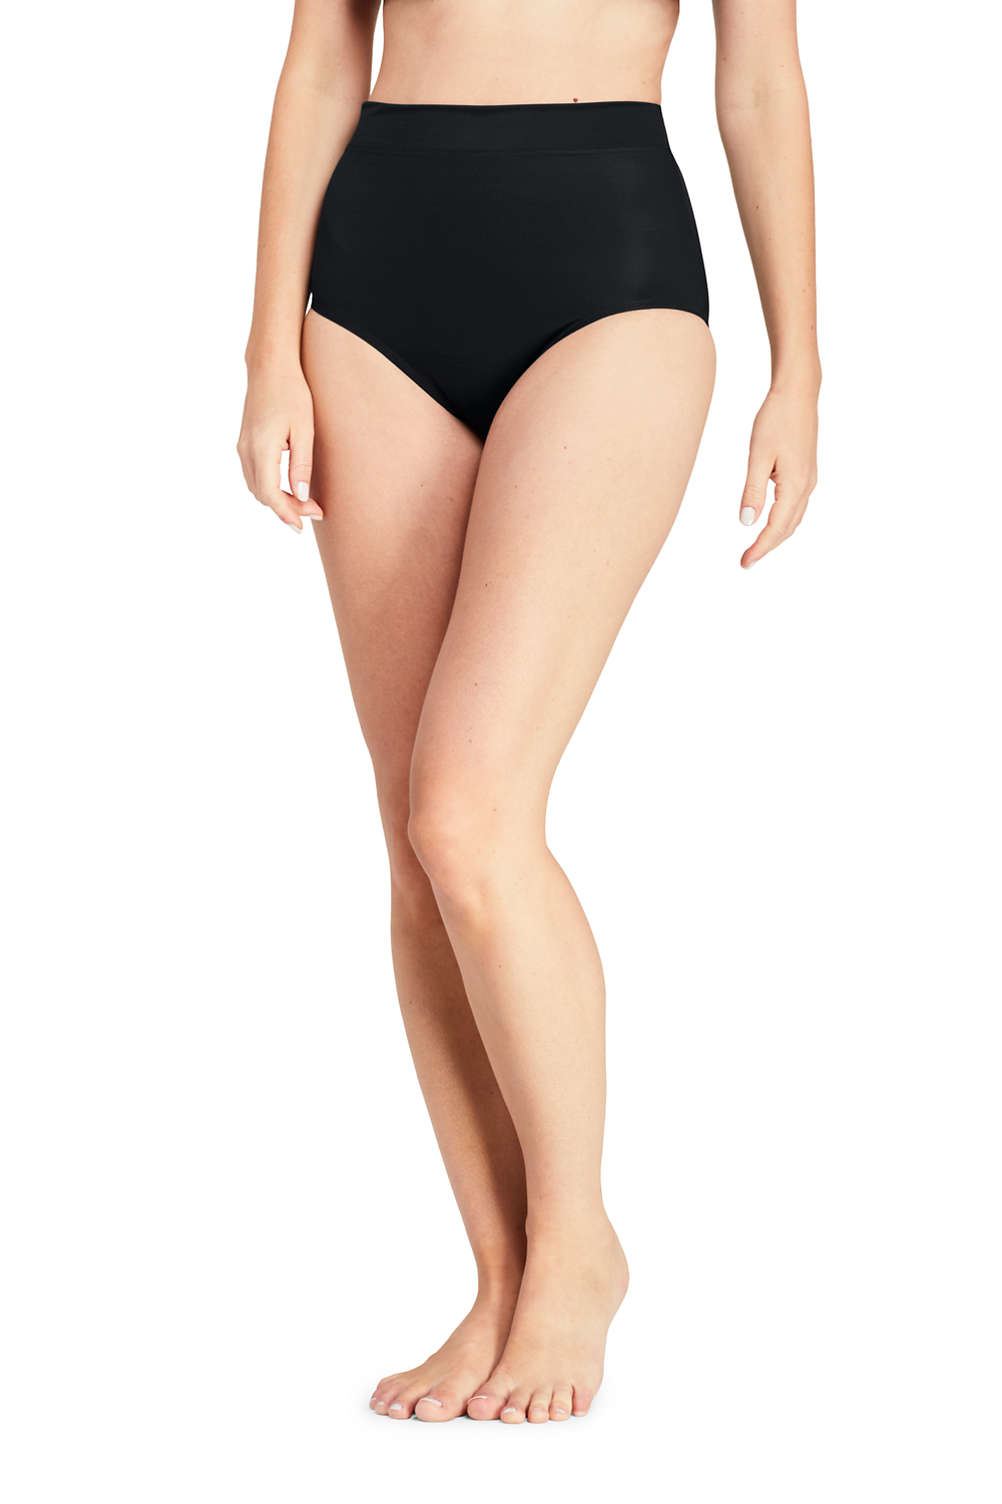 a06c8f8f169ca Women's Slender High Waisted Tummy Control Bikini Bottoms from Lands' End